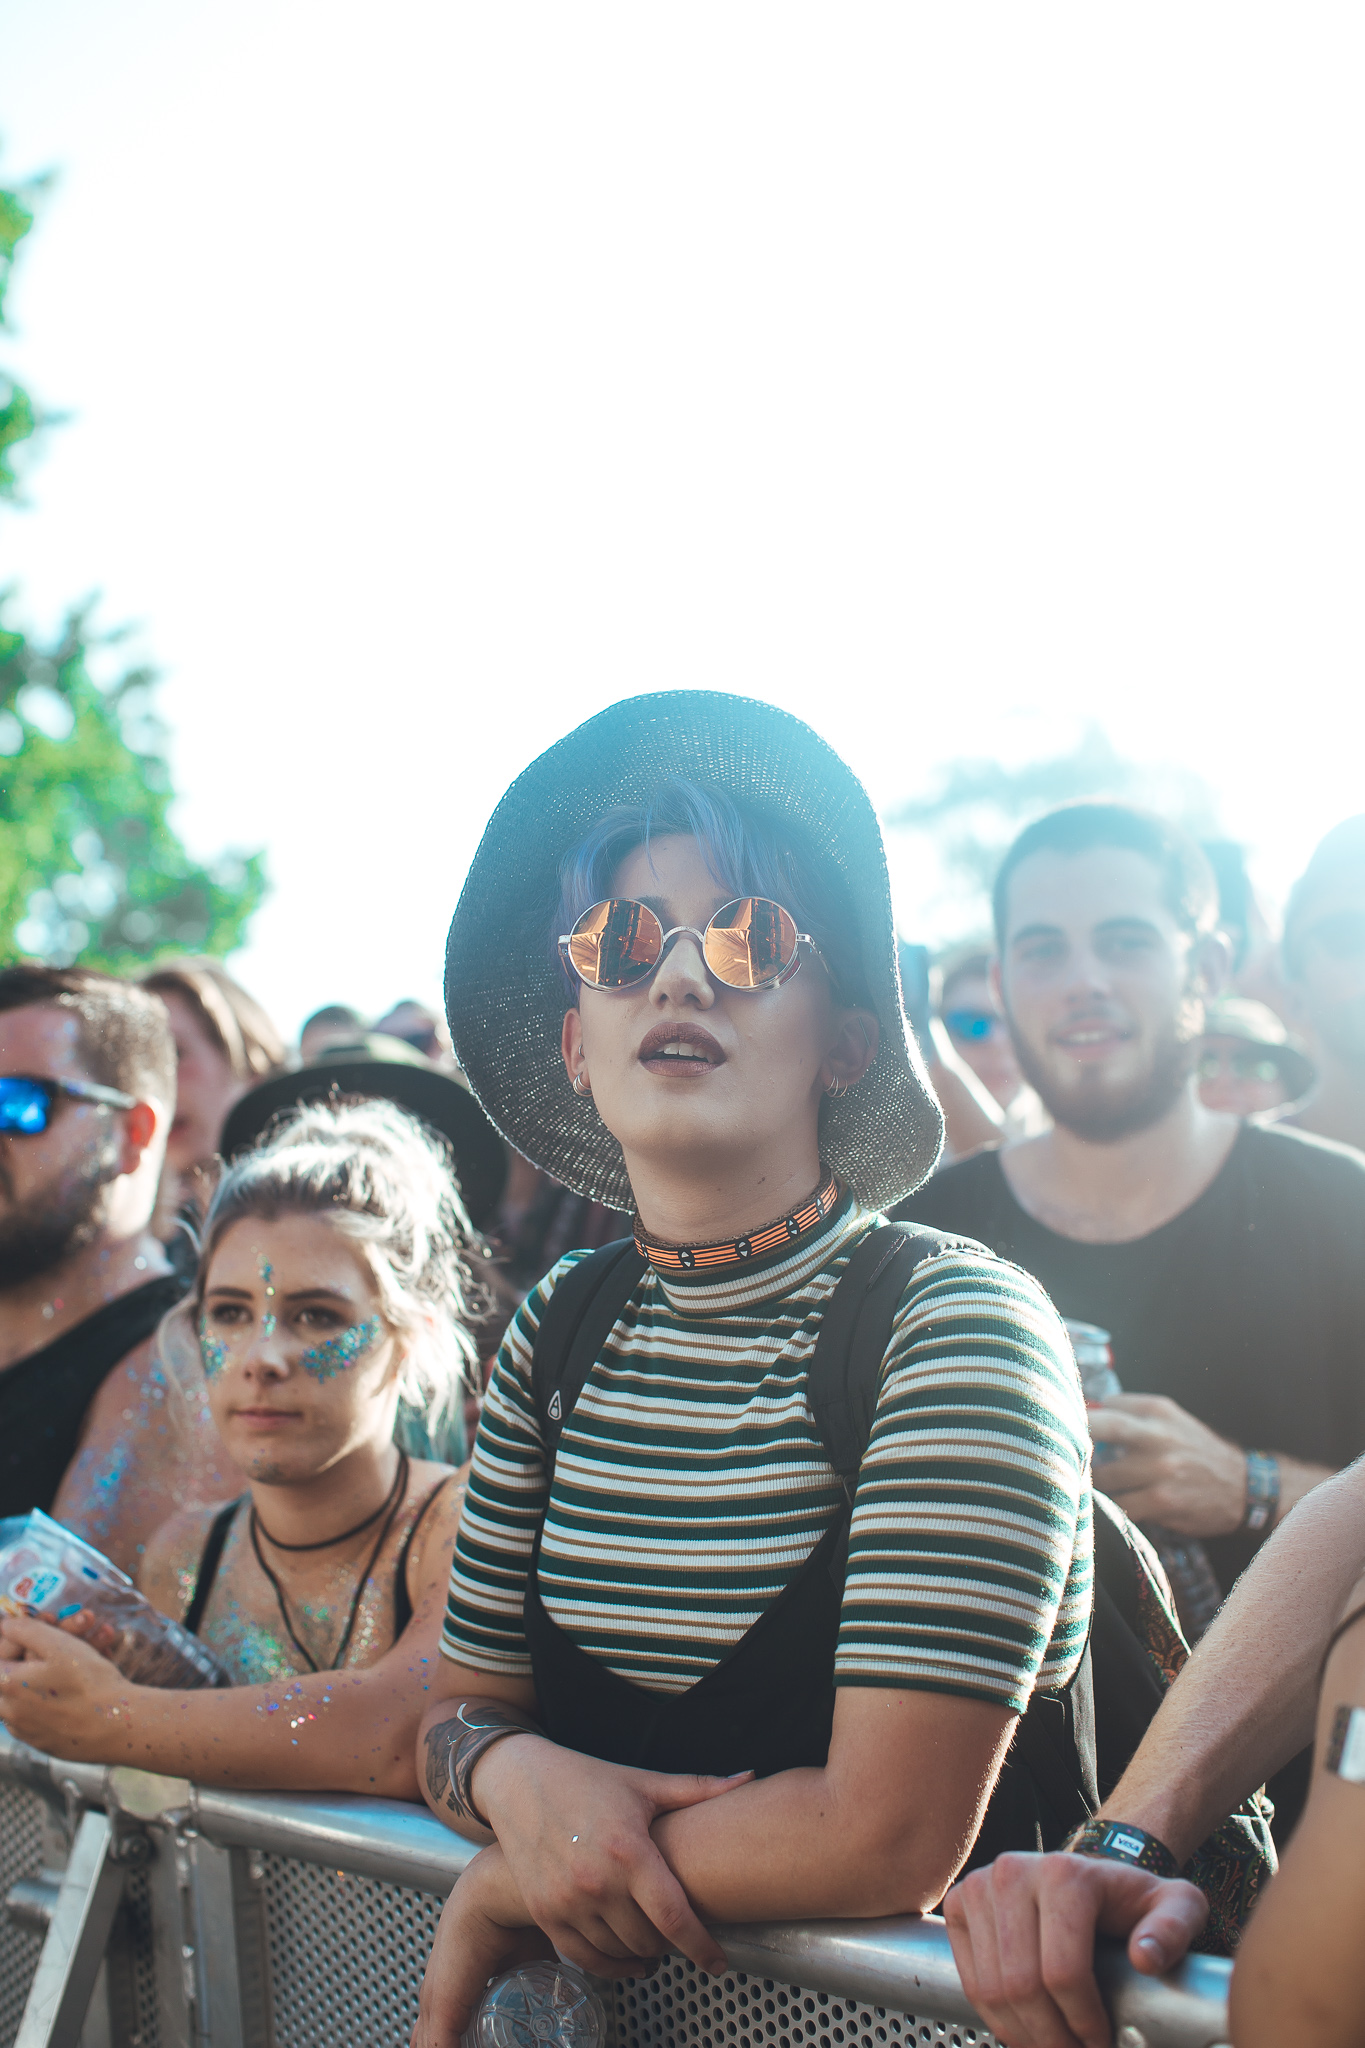 laneway_photo-by-oliver-minnett-00322